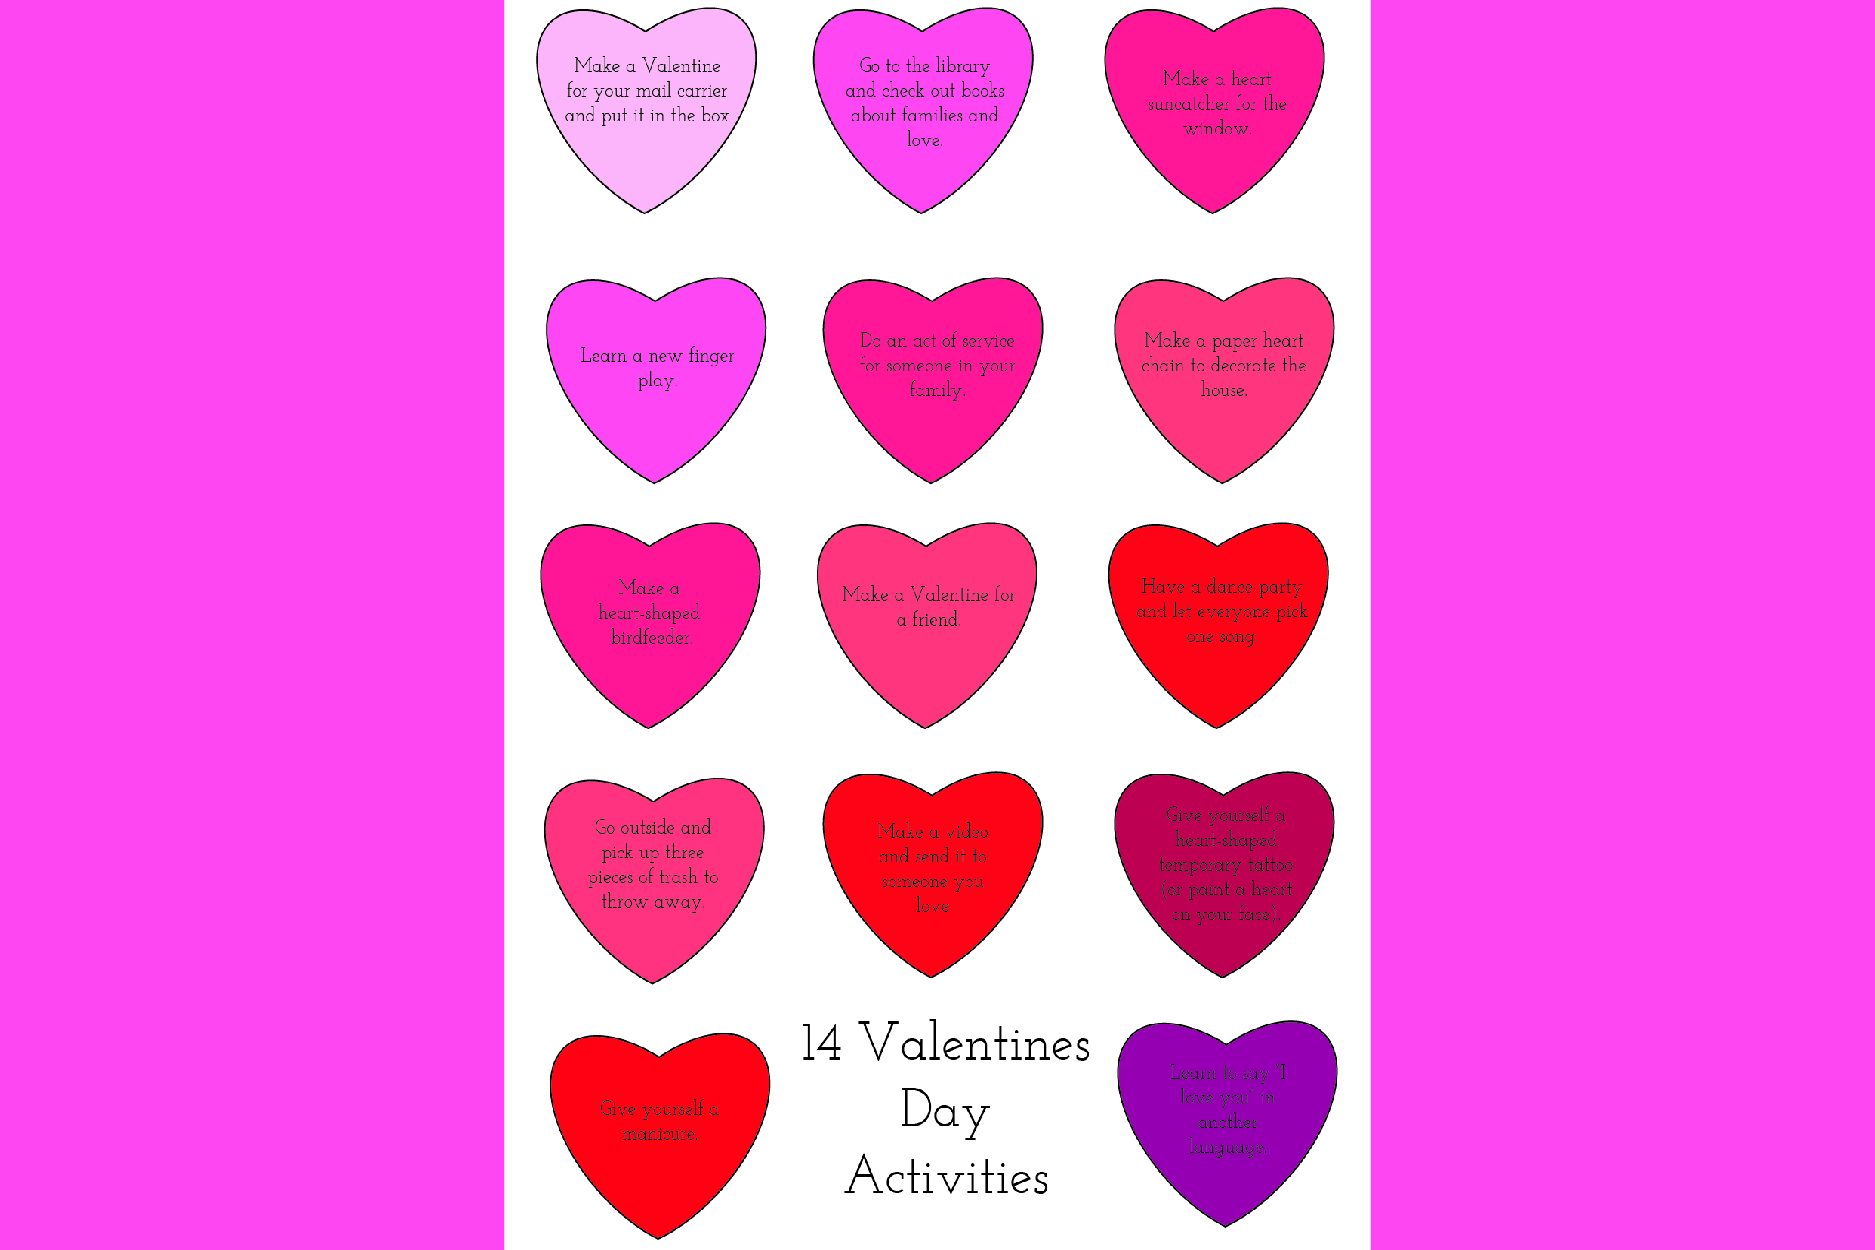 14 Free or Cheap Activities for Valentines